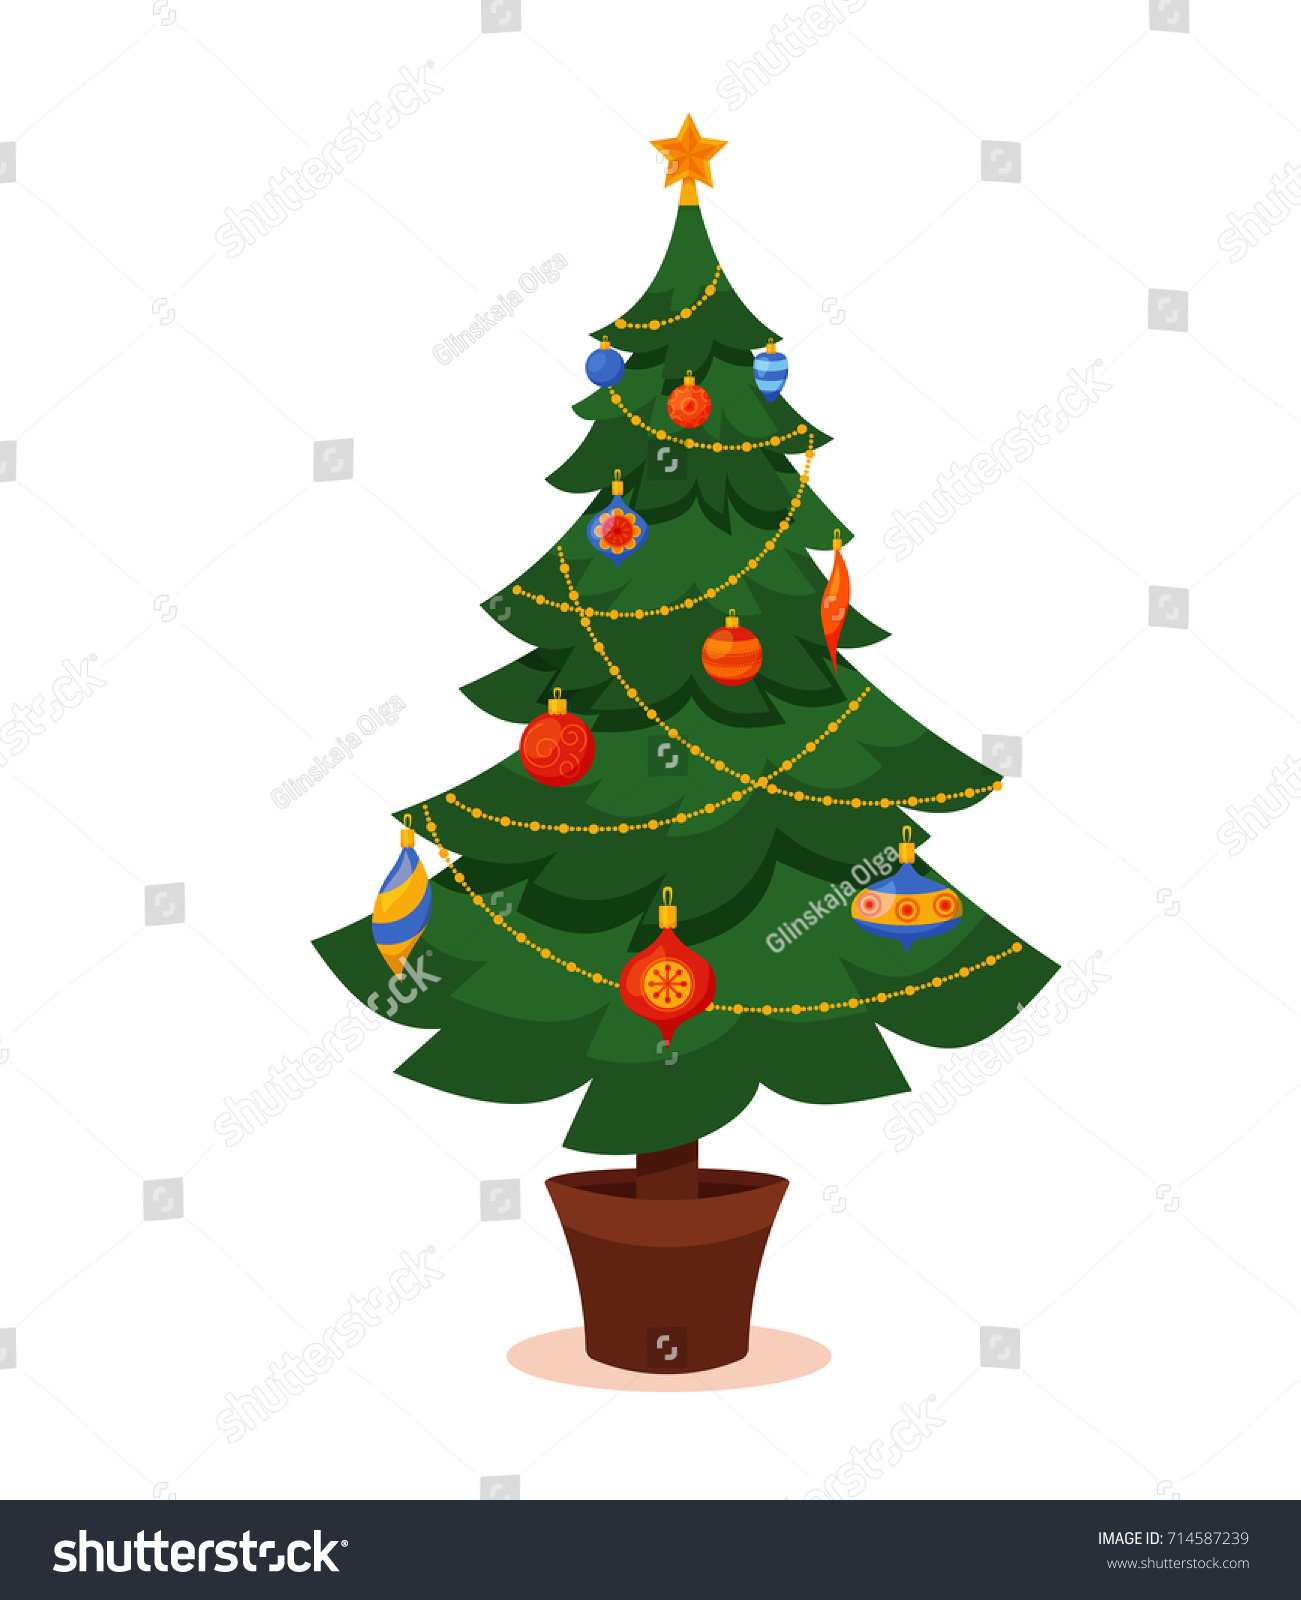 christmas tree decorated vector illustration star decoration balls and light bulb chain gift - Christmas Chain Decorations